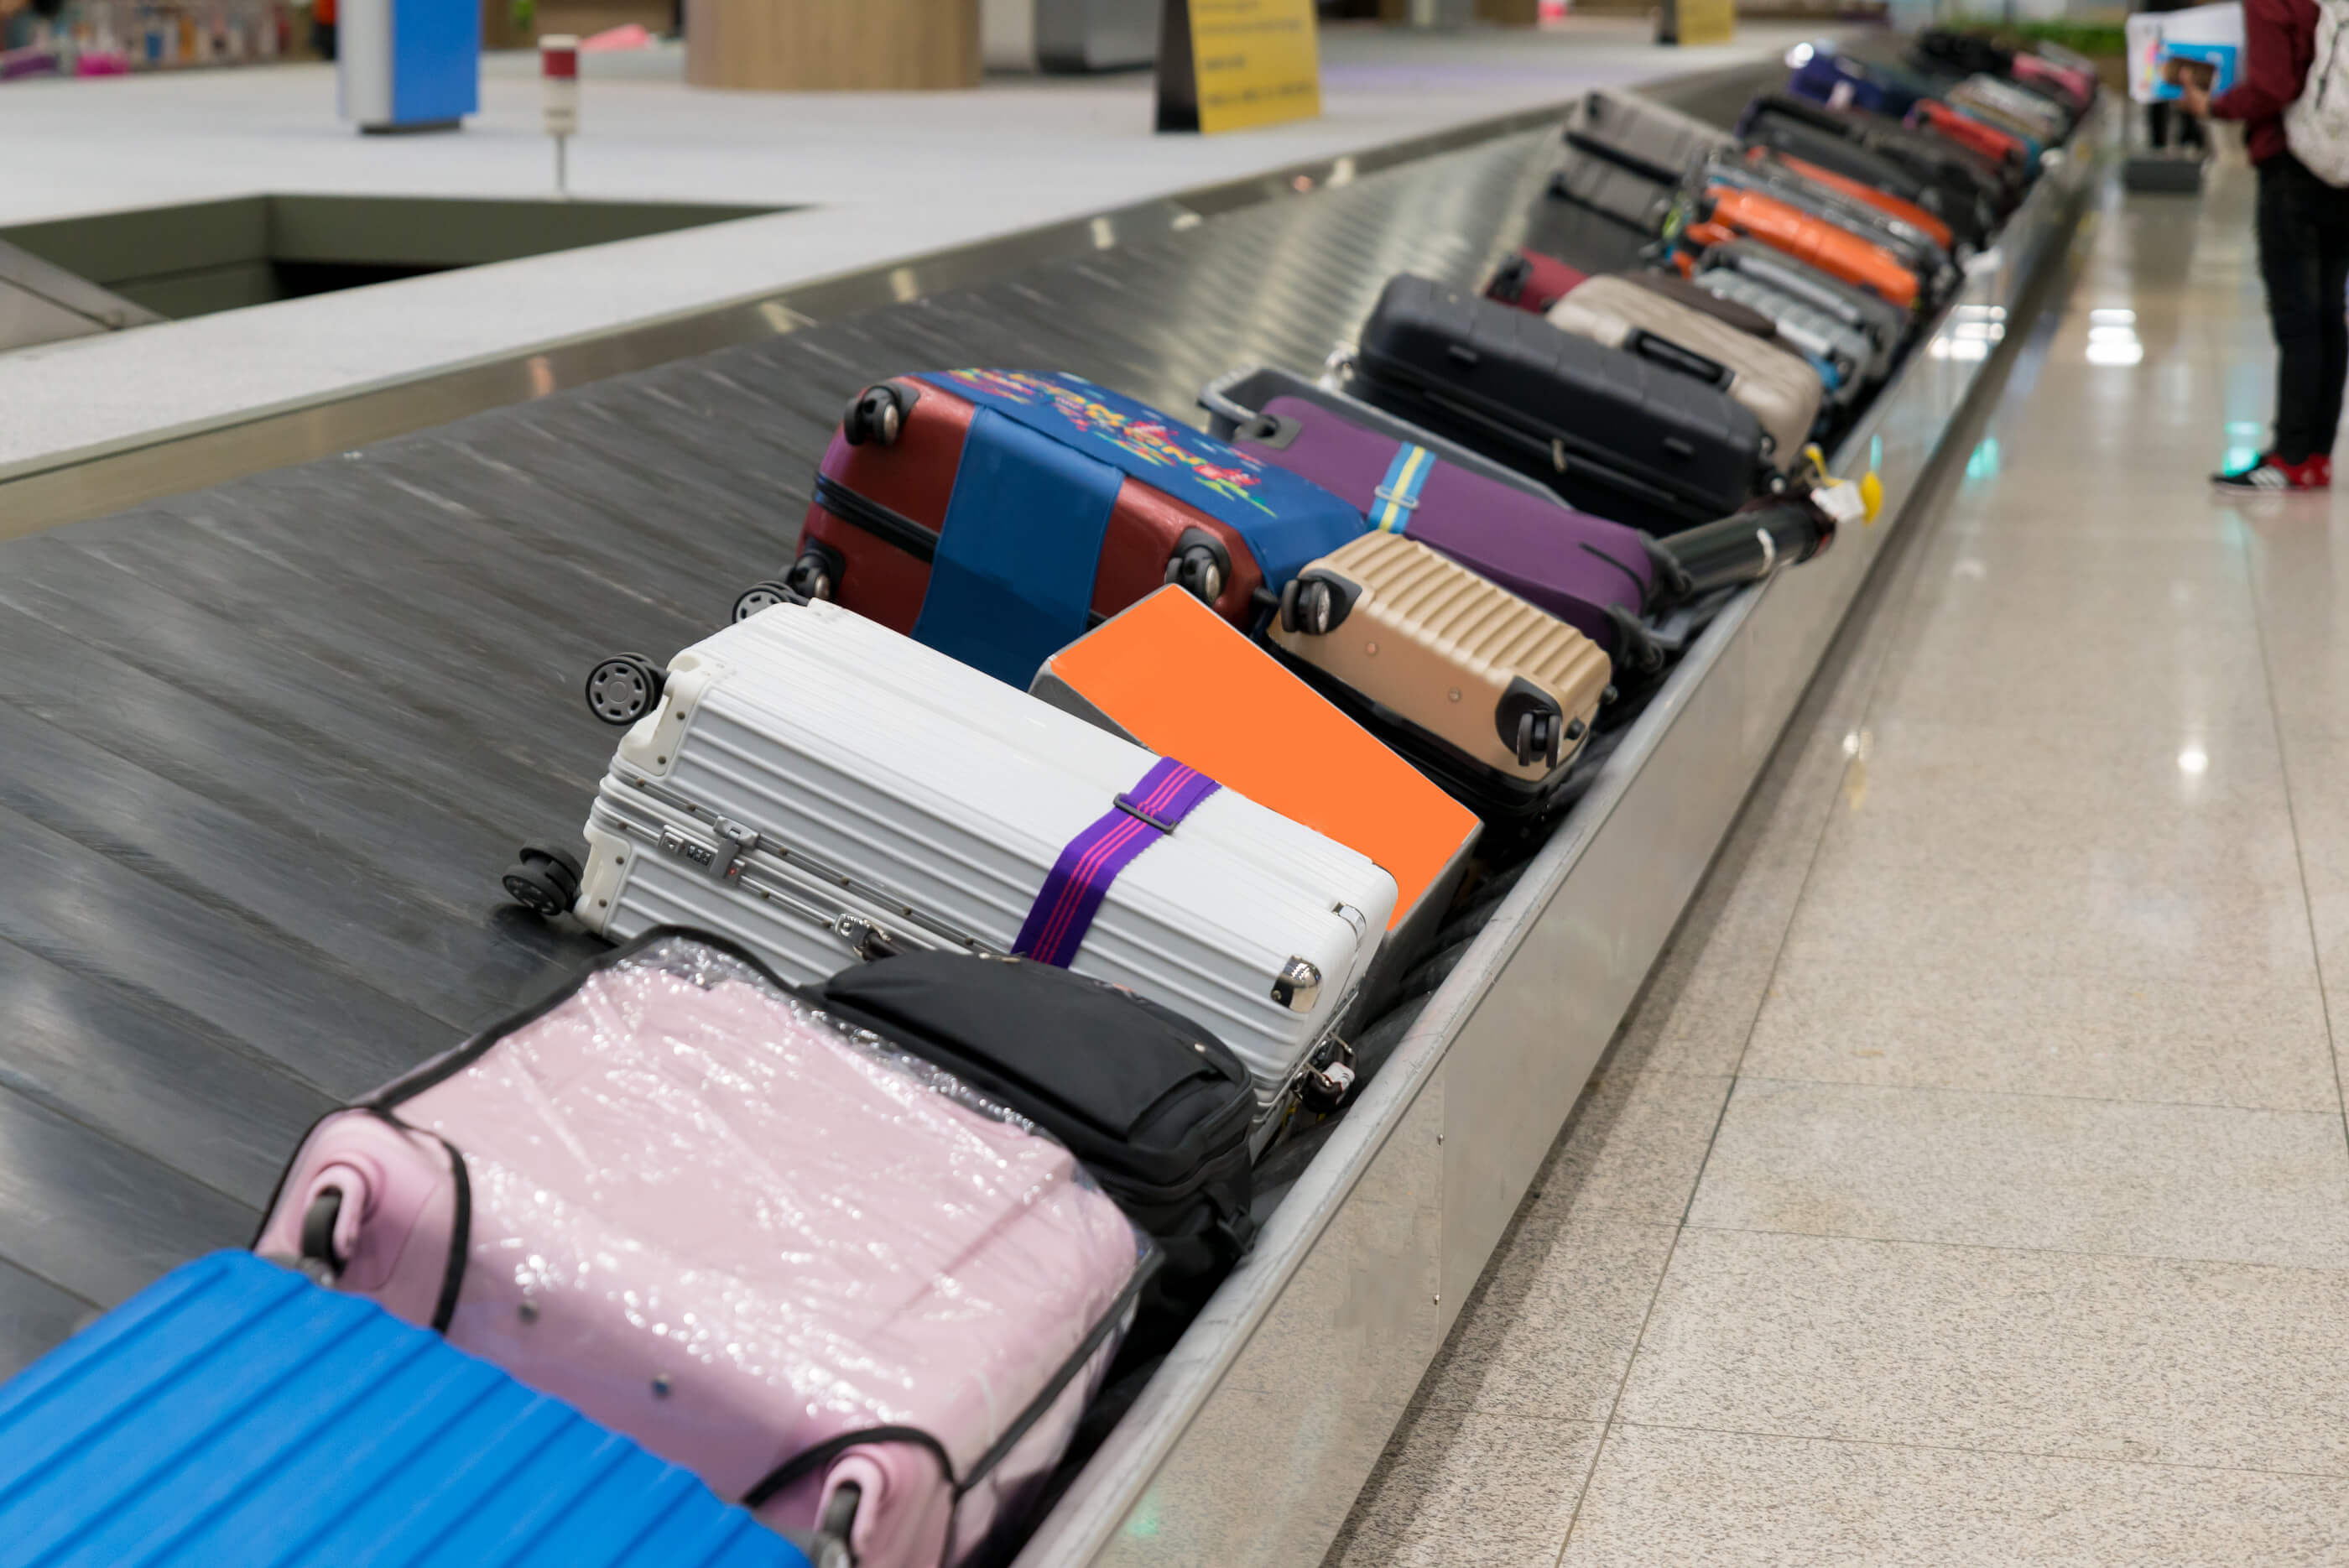 How to Submit a Claim for Your Lost Baggage? - Acko